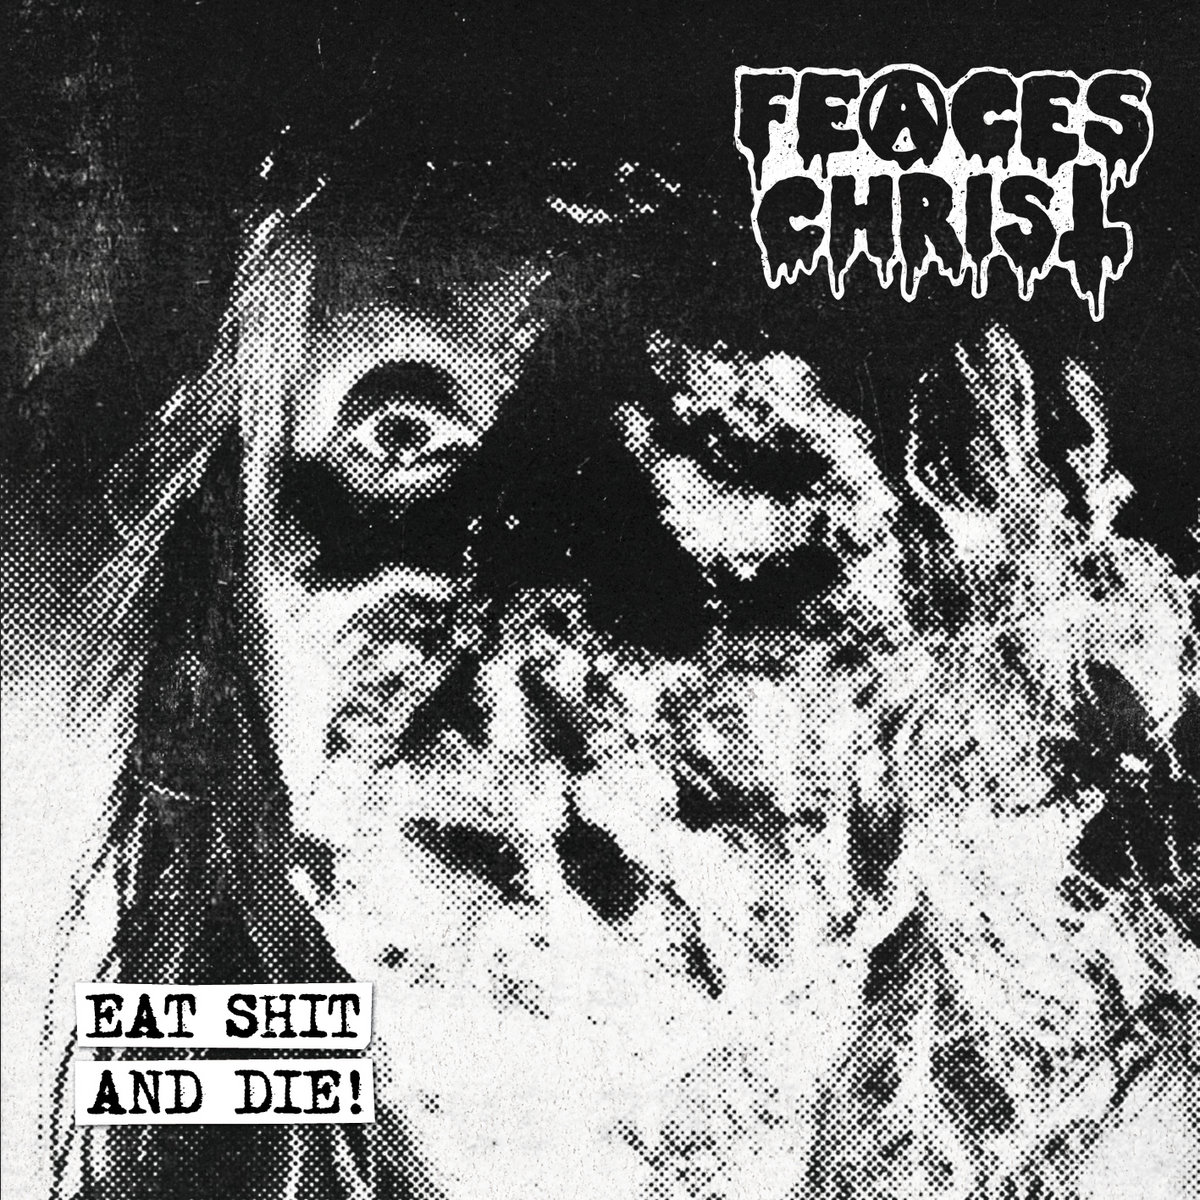 Feaces Christ – Eat Shit And Die